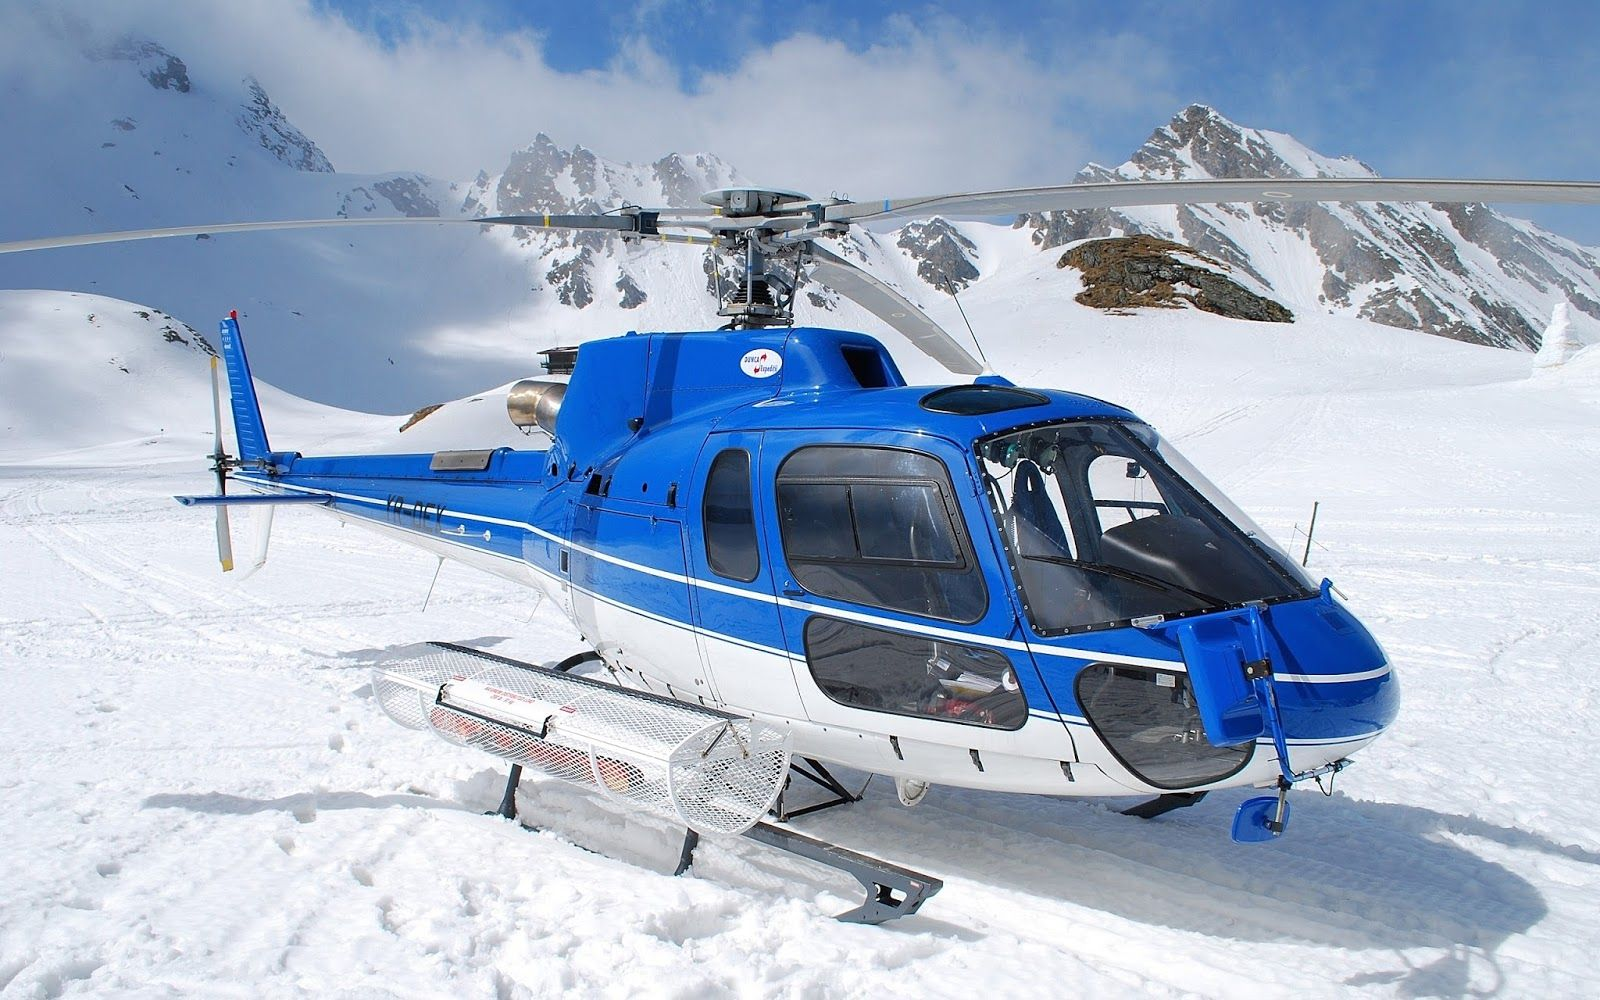 1600x1000 Free Helicopter Wallpaper Hd Resolution « Long Wallpapers